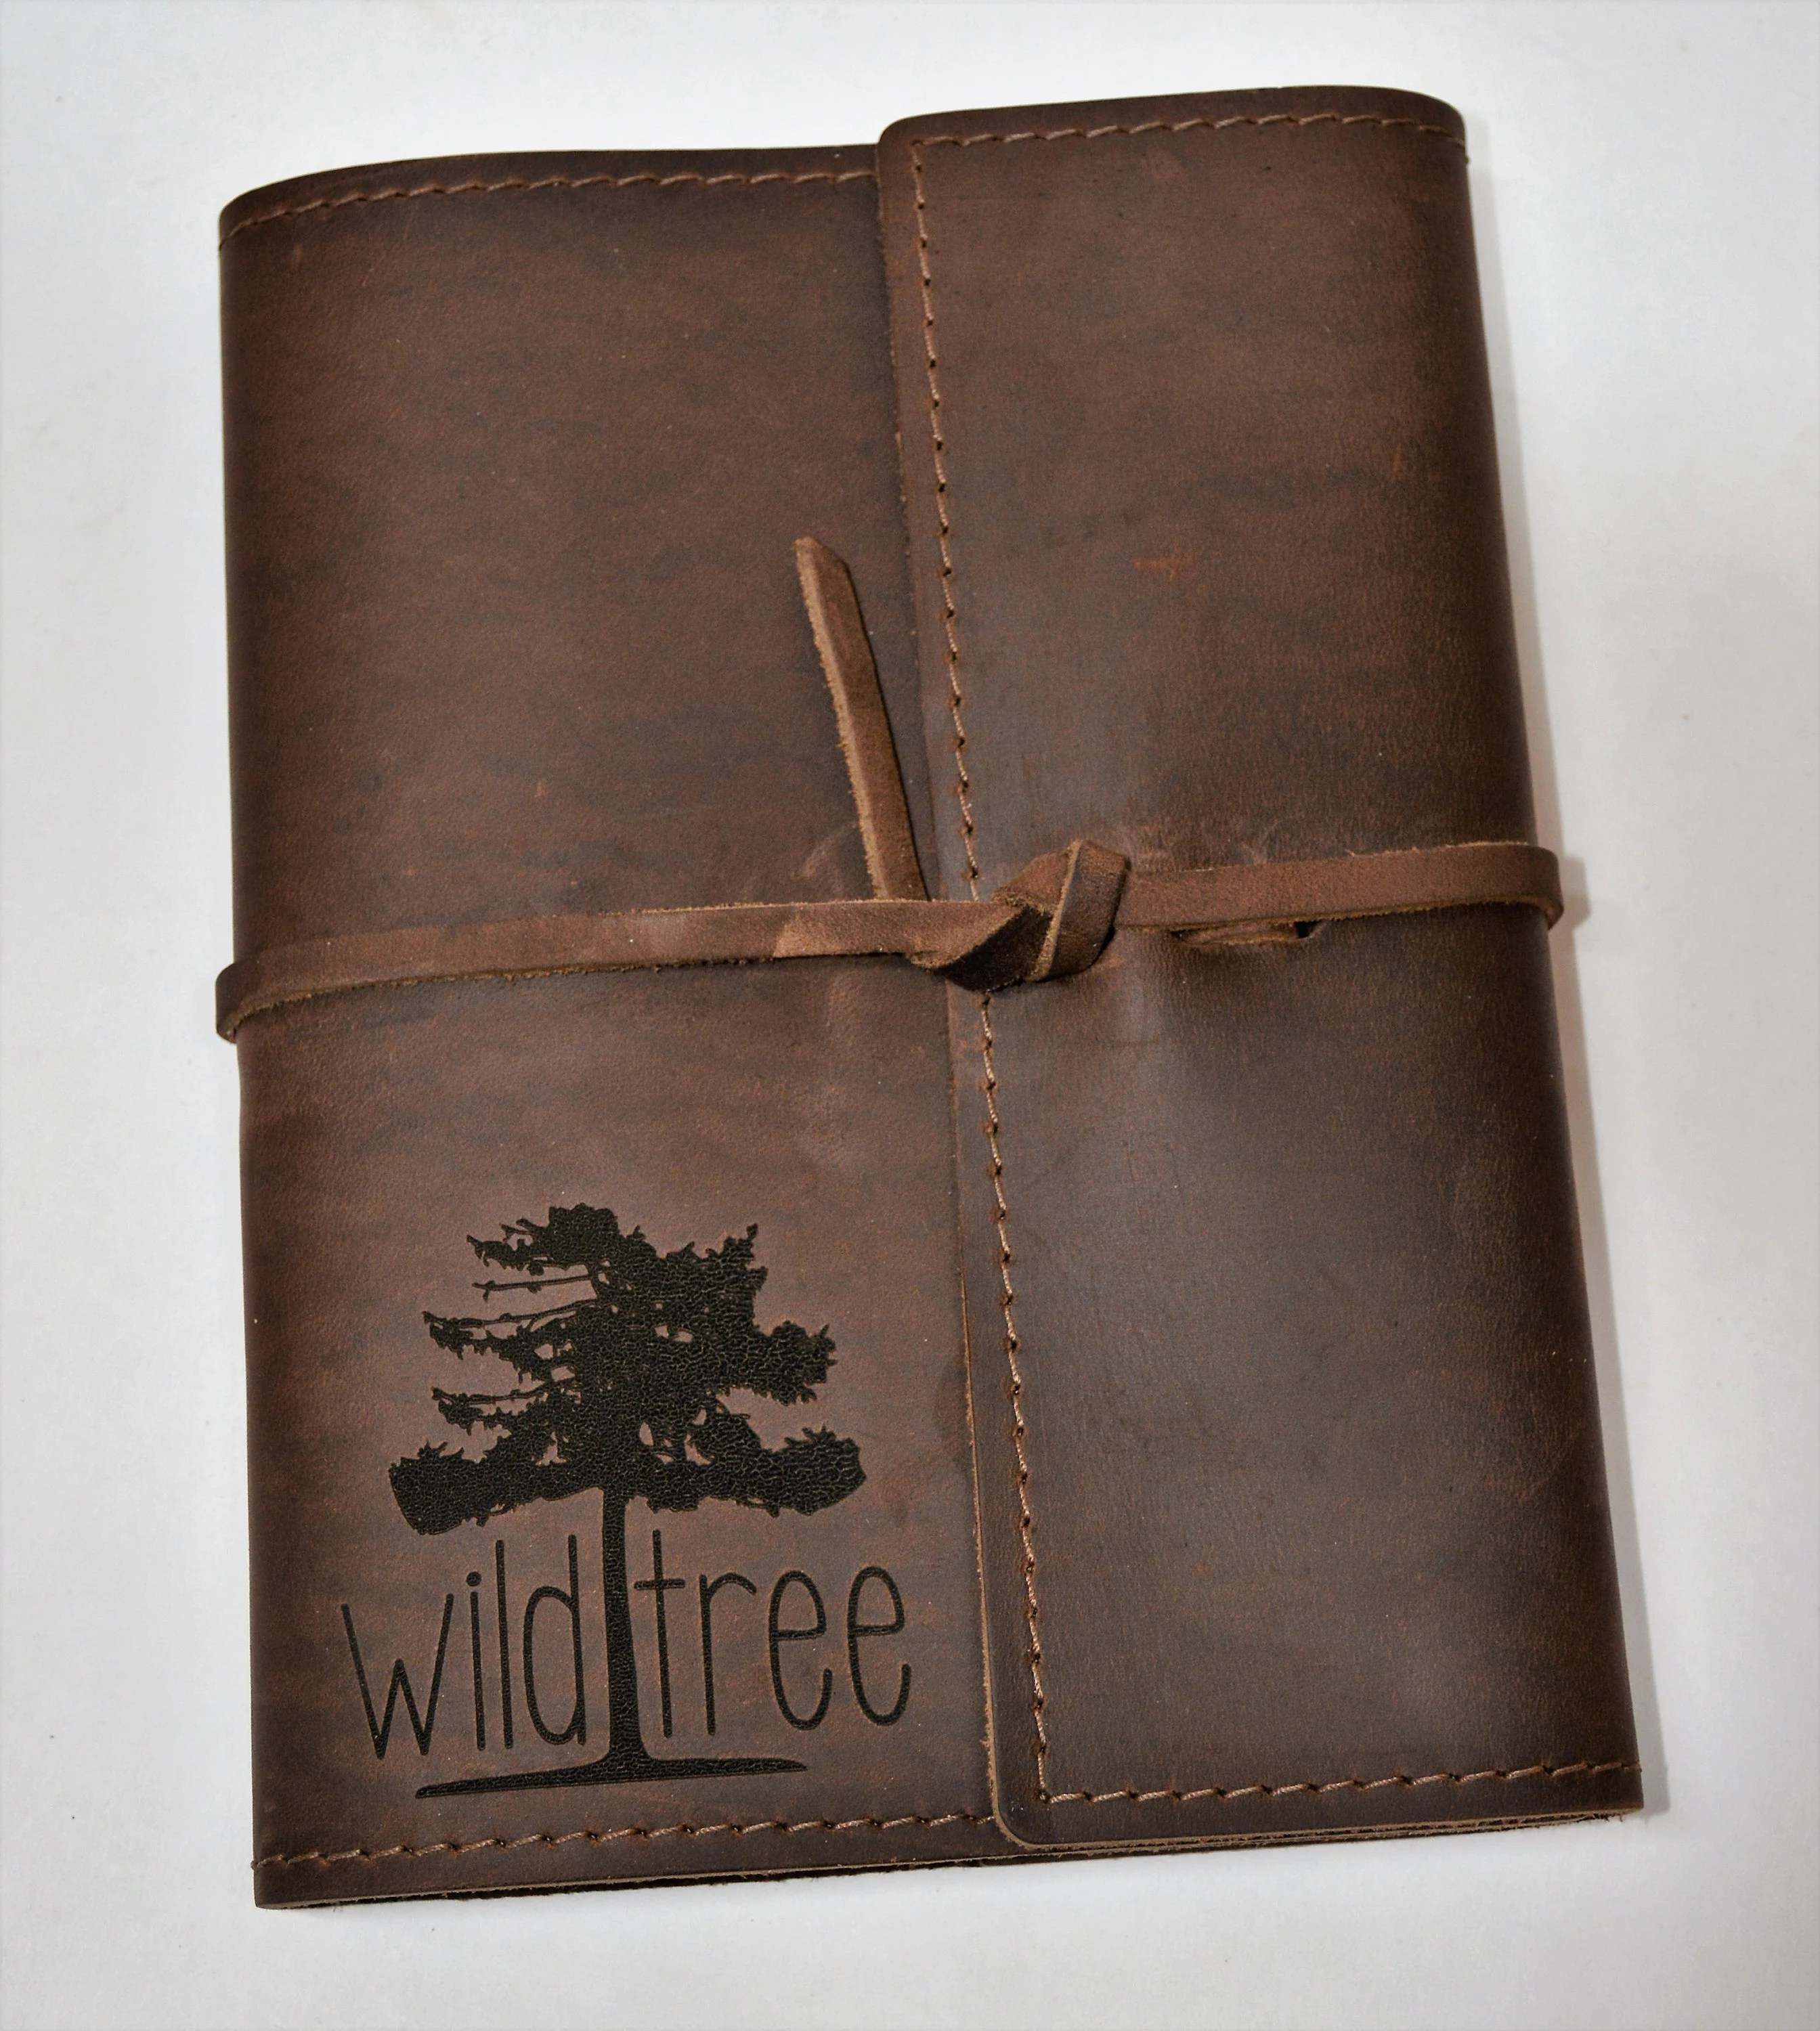 Refillable Writer's Log large Journal Leather Journal image 7